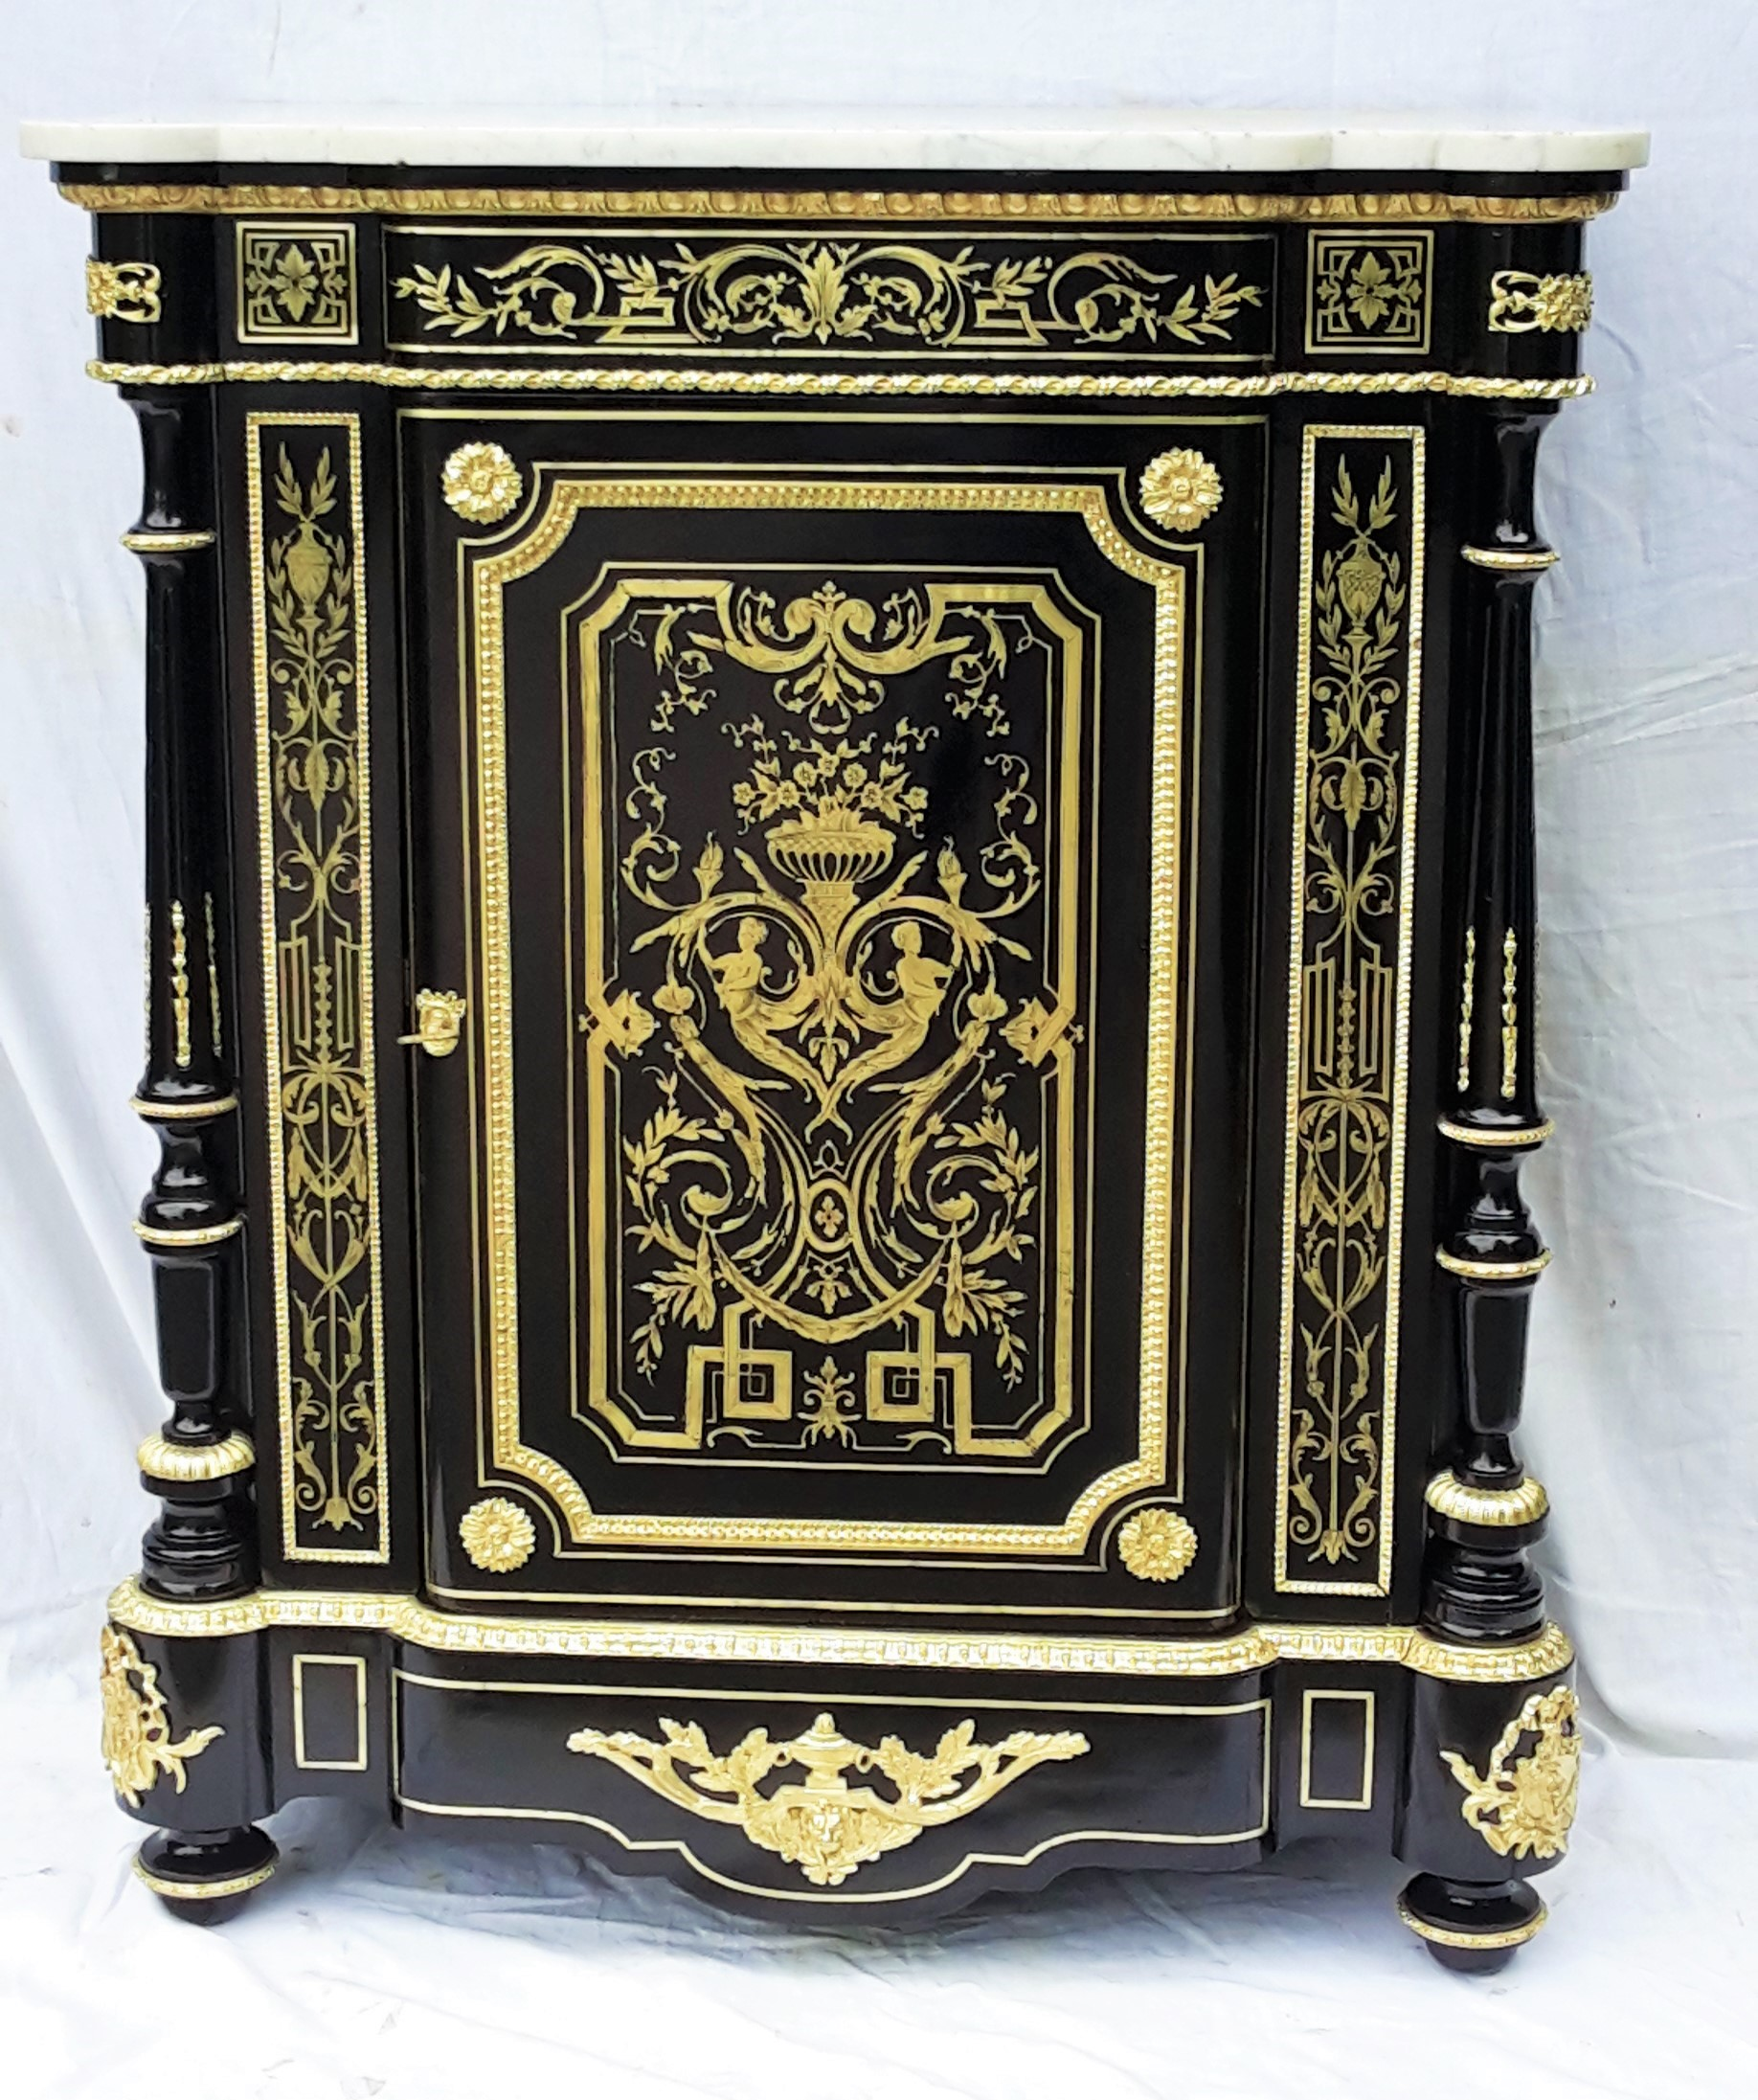 b274 meuble dormants marqueterie boulle napoleon iii la galerie napol on 3. Black Bedroom Furniture Sets. Home Design Ideas